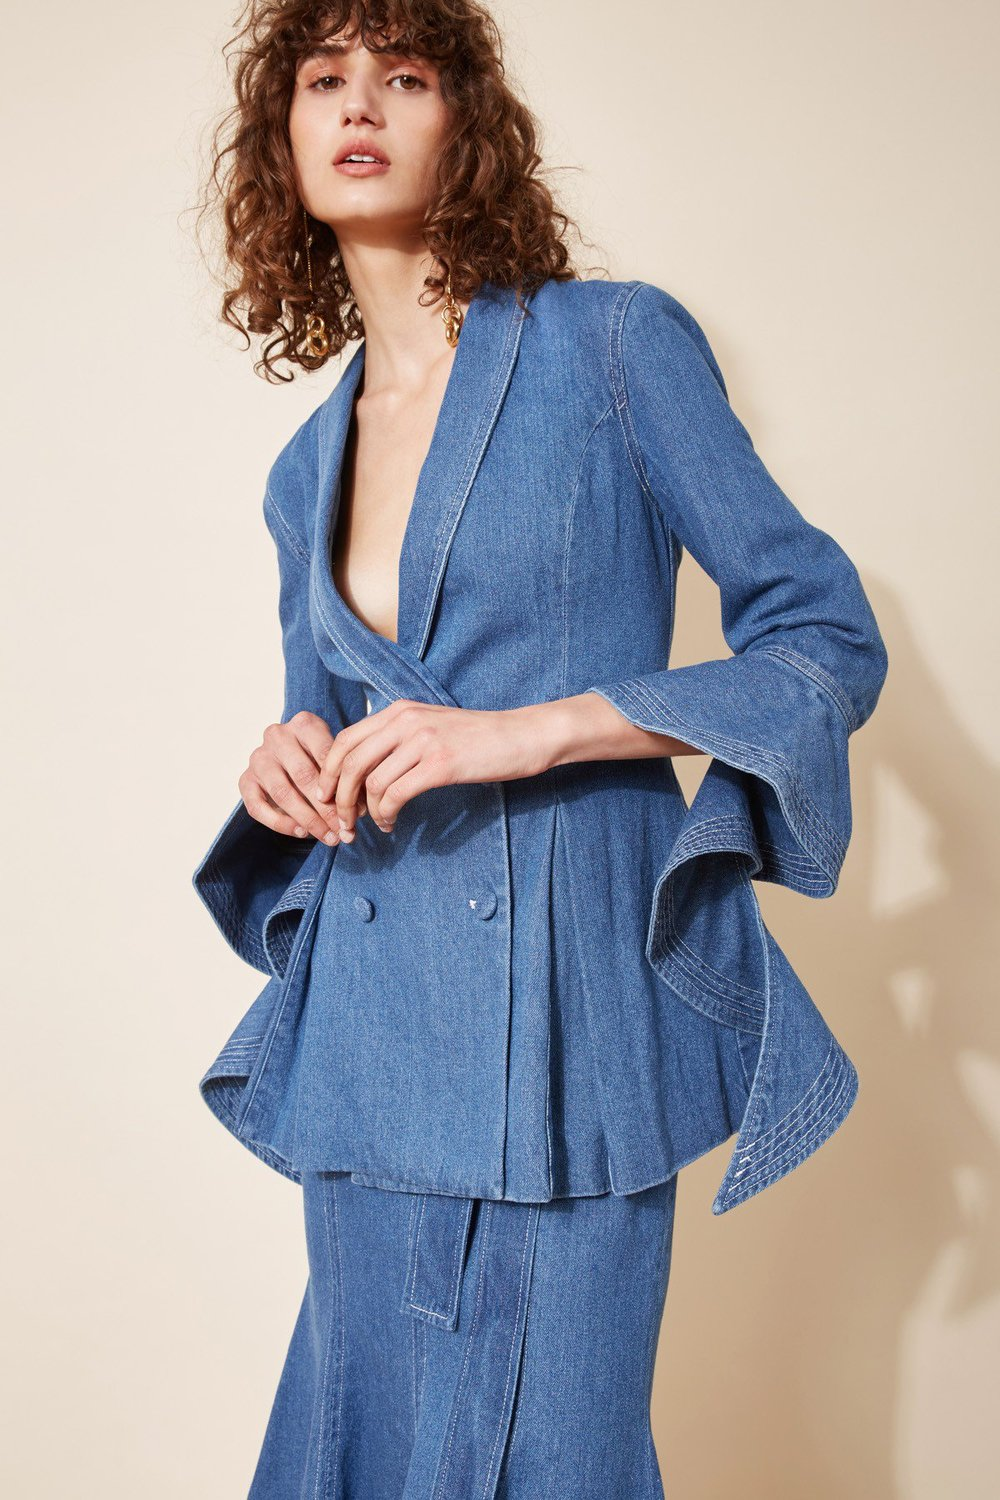 C/MEO COLLECTIVE Perpetual Dreams Blazer